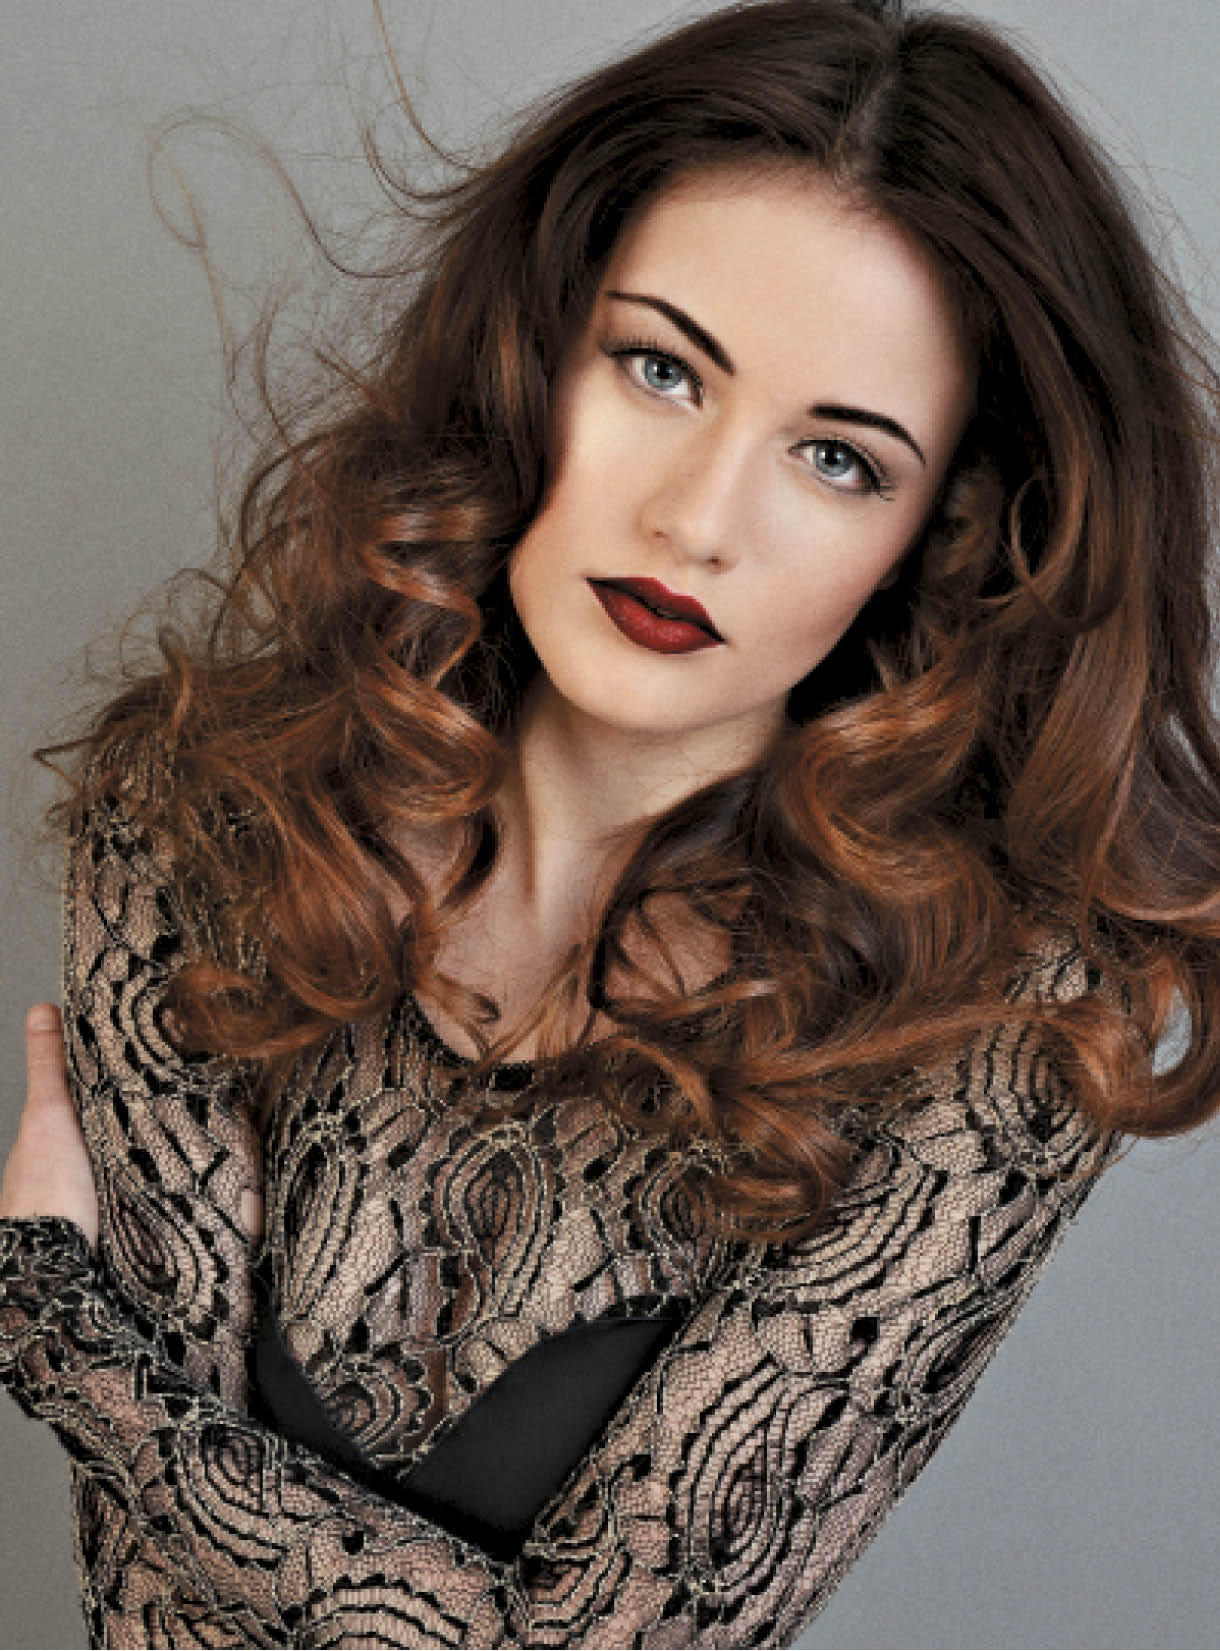 For this sexy, glamorous shape, Gamble and Passmore applied Expanda Volume Root Energizer on the roots, midlengths and ends for style support before using a medium brush and a blow-dryer to create billowy curls. Once curls were cool, Gamble and Passmore separated waves with a rake comb, then worked a bit of Tricky Spray Finishing Wax into the look for added hold and definition.